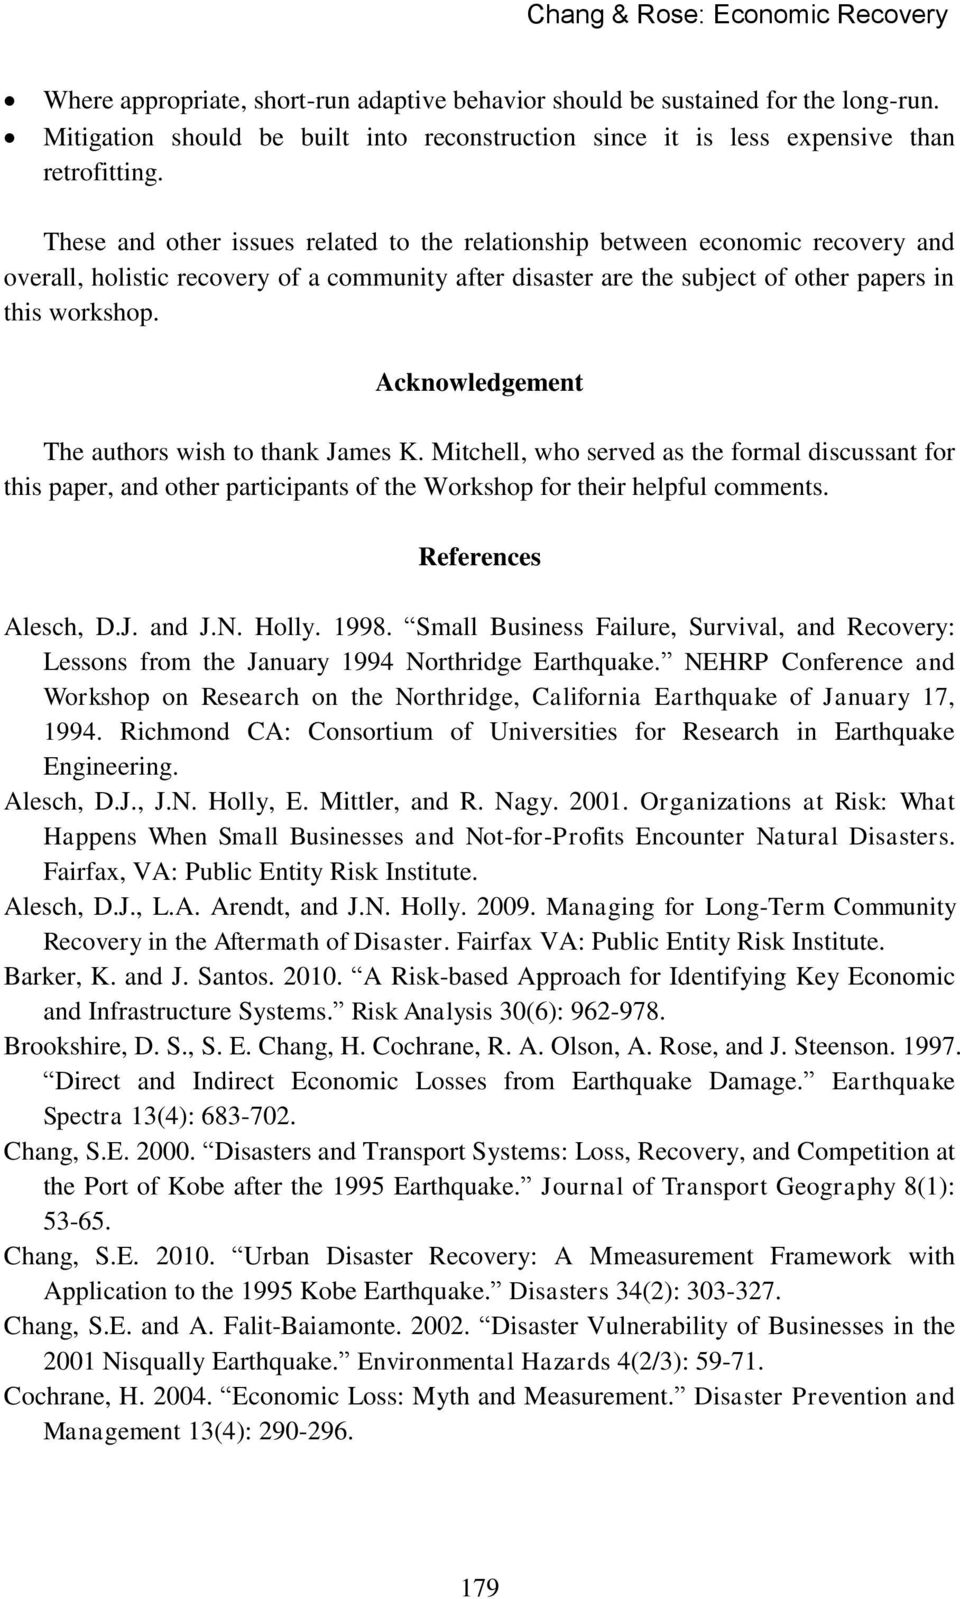 Acknowledgement The authors wish to thank James K. Mitchell, who served as the formal discussant for this paper, and other participants of the Workshop for their helpful comments.